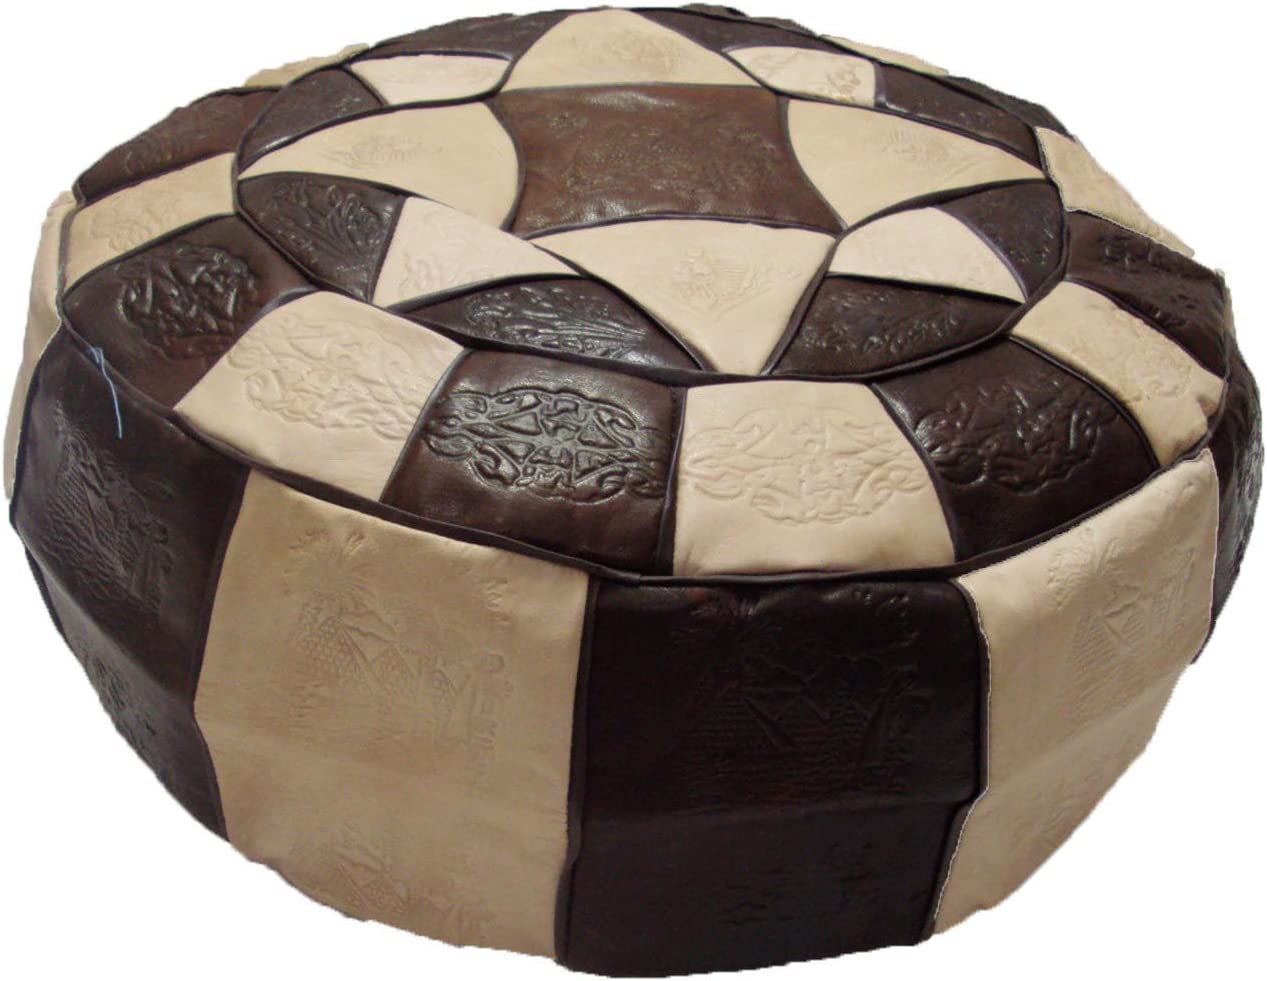 Authentic Egyptian Morocan Handmade Genuine Leather Ottoman Pouf Footstool Unstuffed Large Diameter 19 Height 7.5